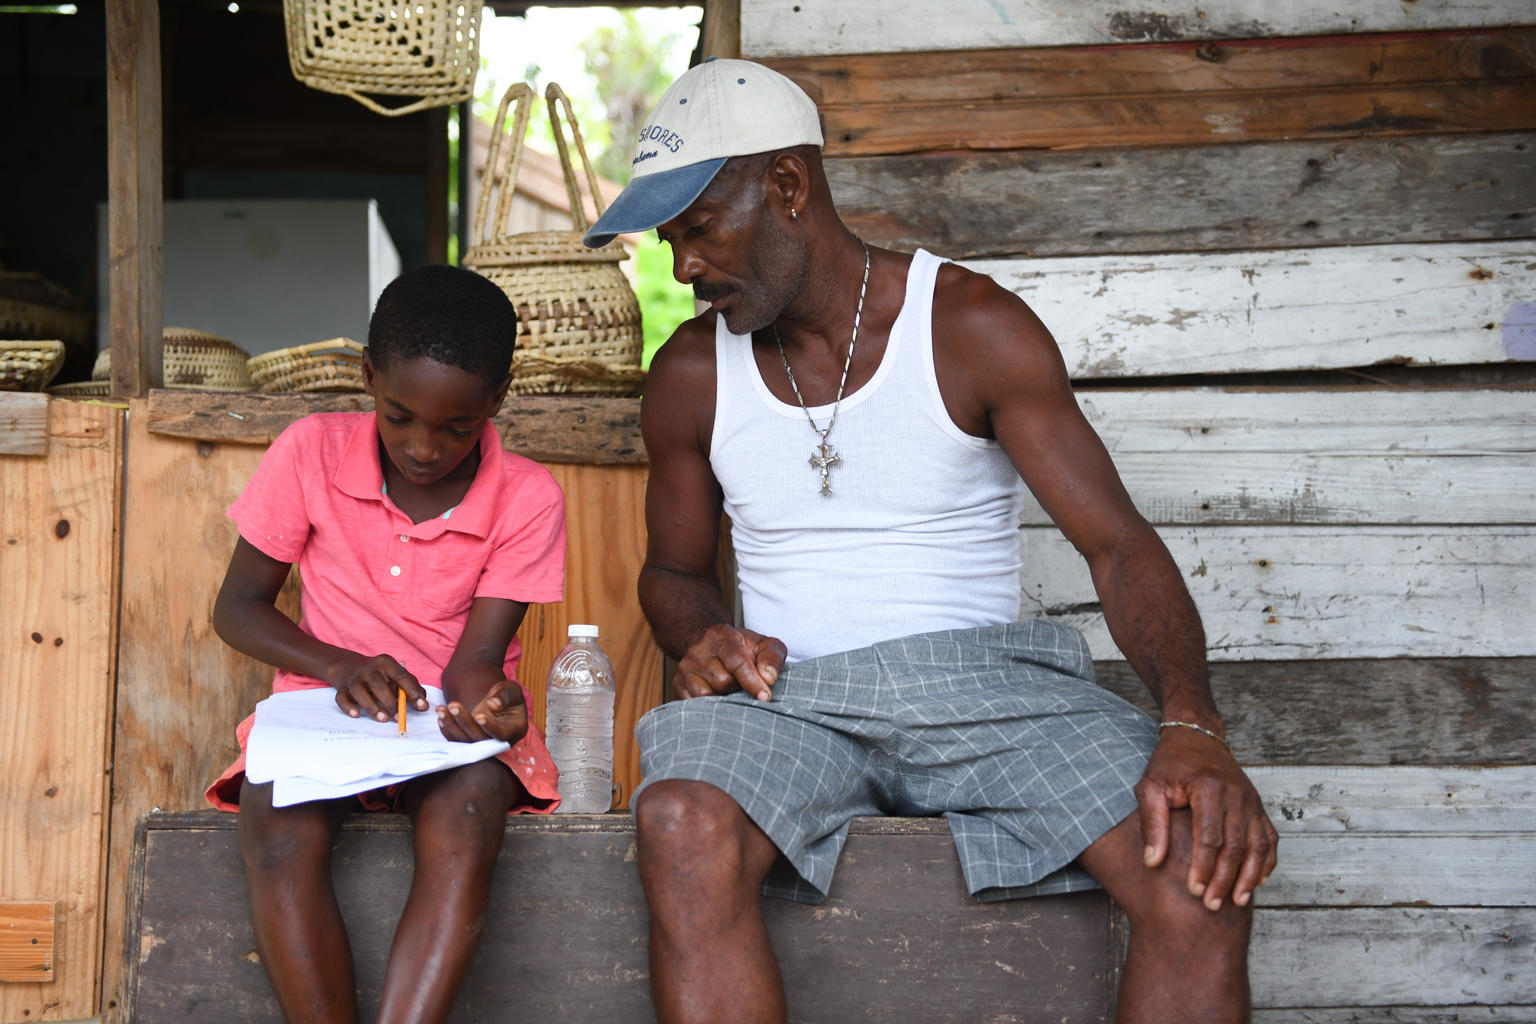 Joel Young a student of Little Bay Primary and Infant school with his father Wayne Young a fisherman. going through the weeks lessons. The school is located in Little Bay, a mainly fishing community located in the parish of Westmoreland, the western end of the island of Jamaica on Monday, September 7, 2020. Little bay primary and infant schools is one of the schools which participated in an online course supported by UNICEF – designed to help schools adjust to the new reality as finding its own innovative way to keep children learning since schools were closed in March children have faced obstacles to learning – whether it be access to the internet, or indeed whether their teachers have the necessary skills to provide distance learning. The Virtual Instructional Leadership (VIL) course supported by UNICEF and offered by the National College for Educational Leadership (NCEL) aims to give school leaders the necessary skills to keep children learning despite the pandemic.